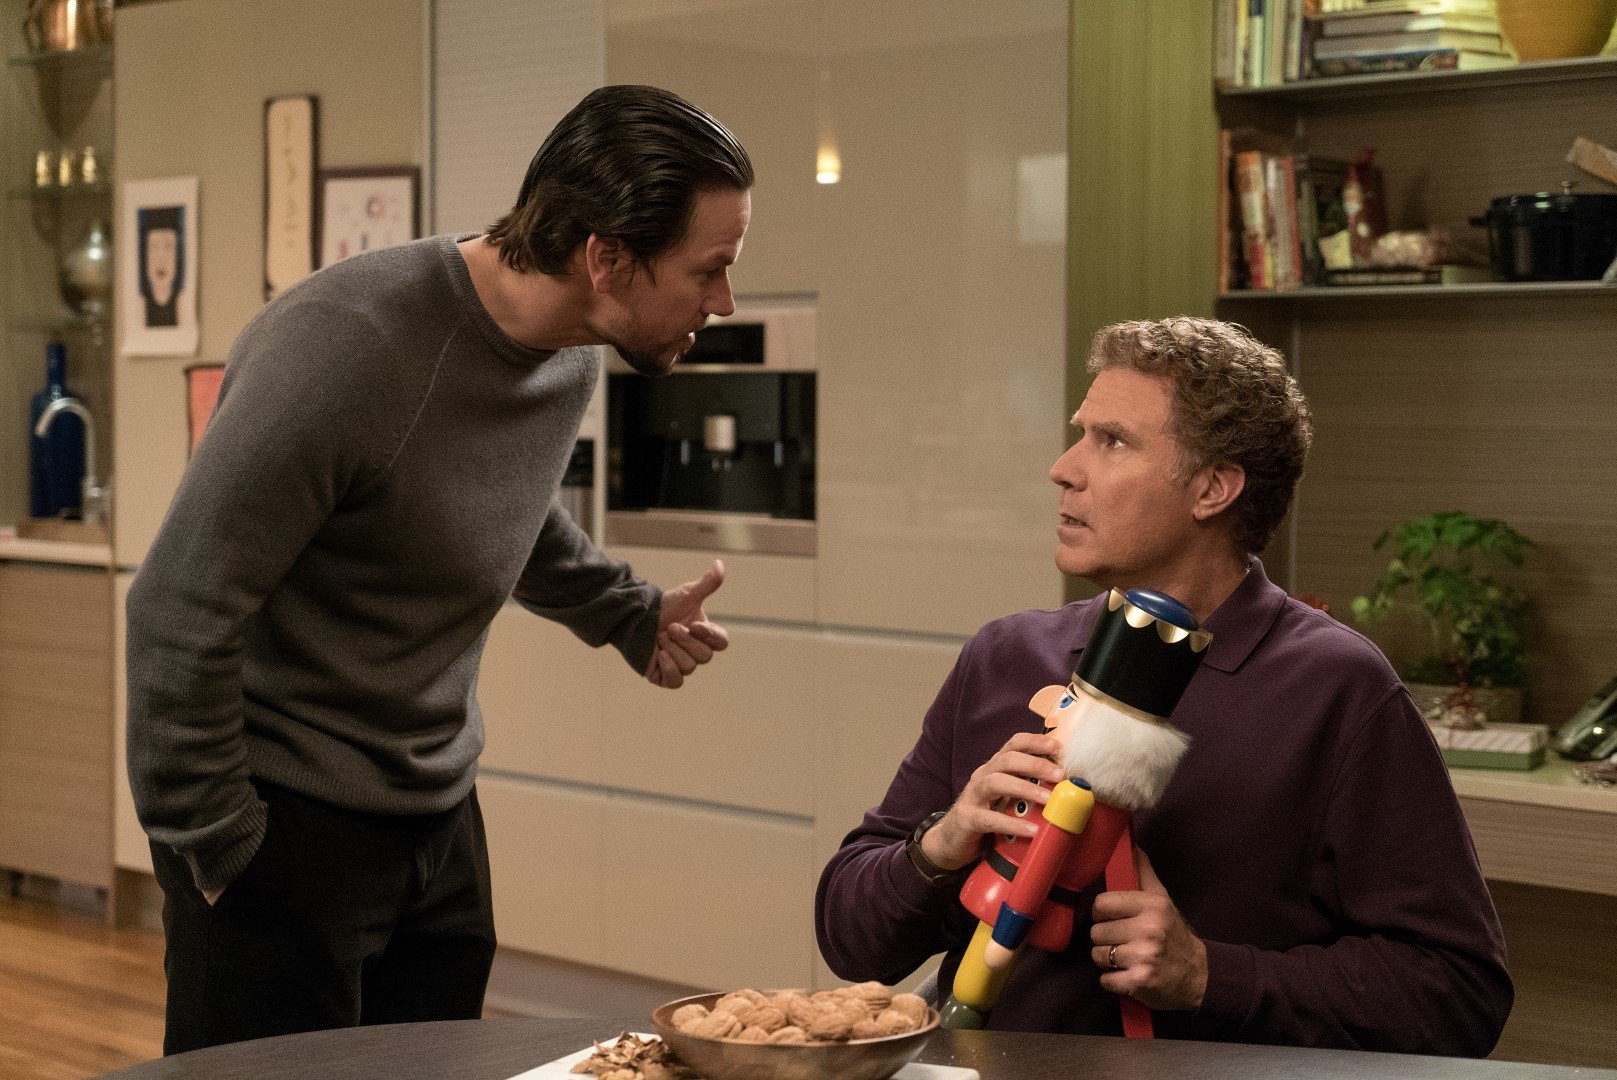 Mark Wahlberg plays Dusty and Will Ferrell plays Brad in Daddy's Home 2 from Paramount Pictures.